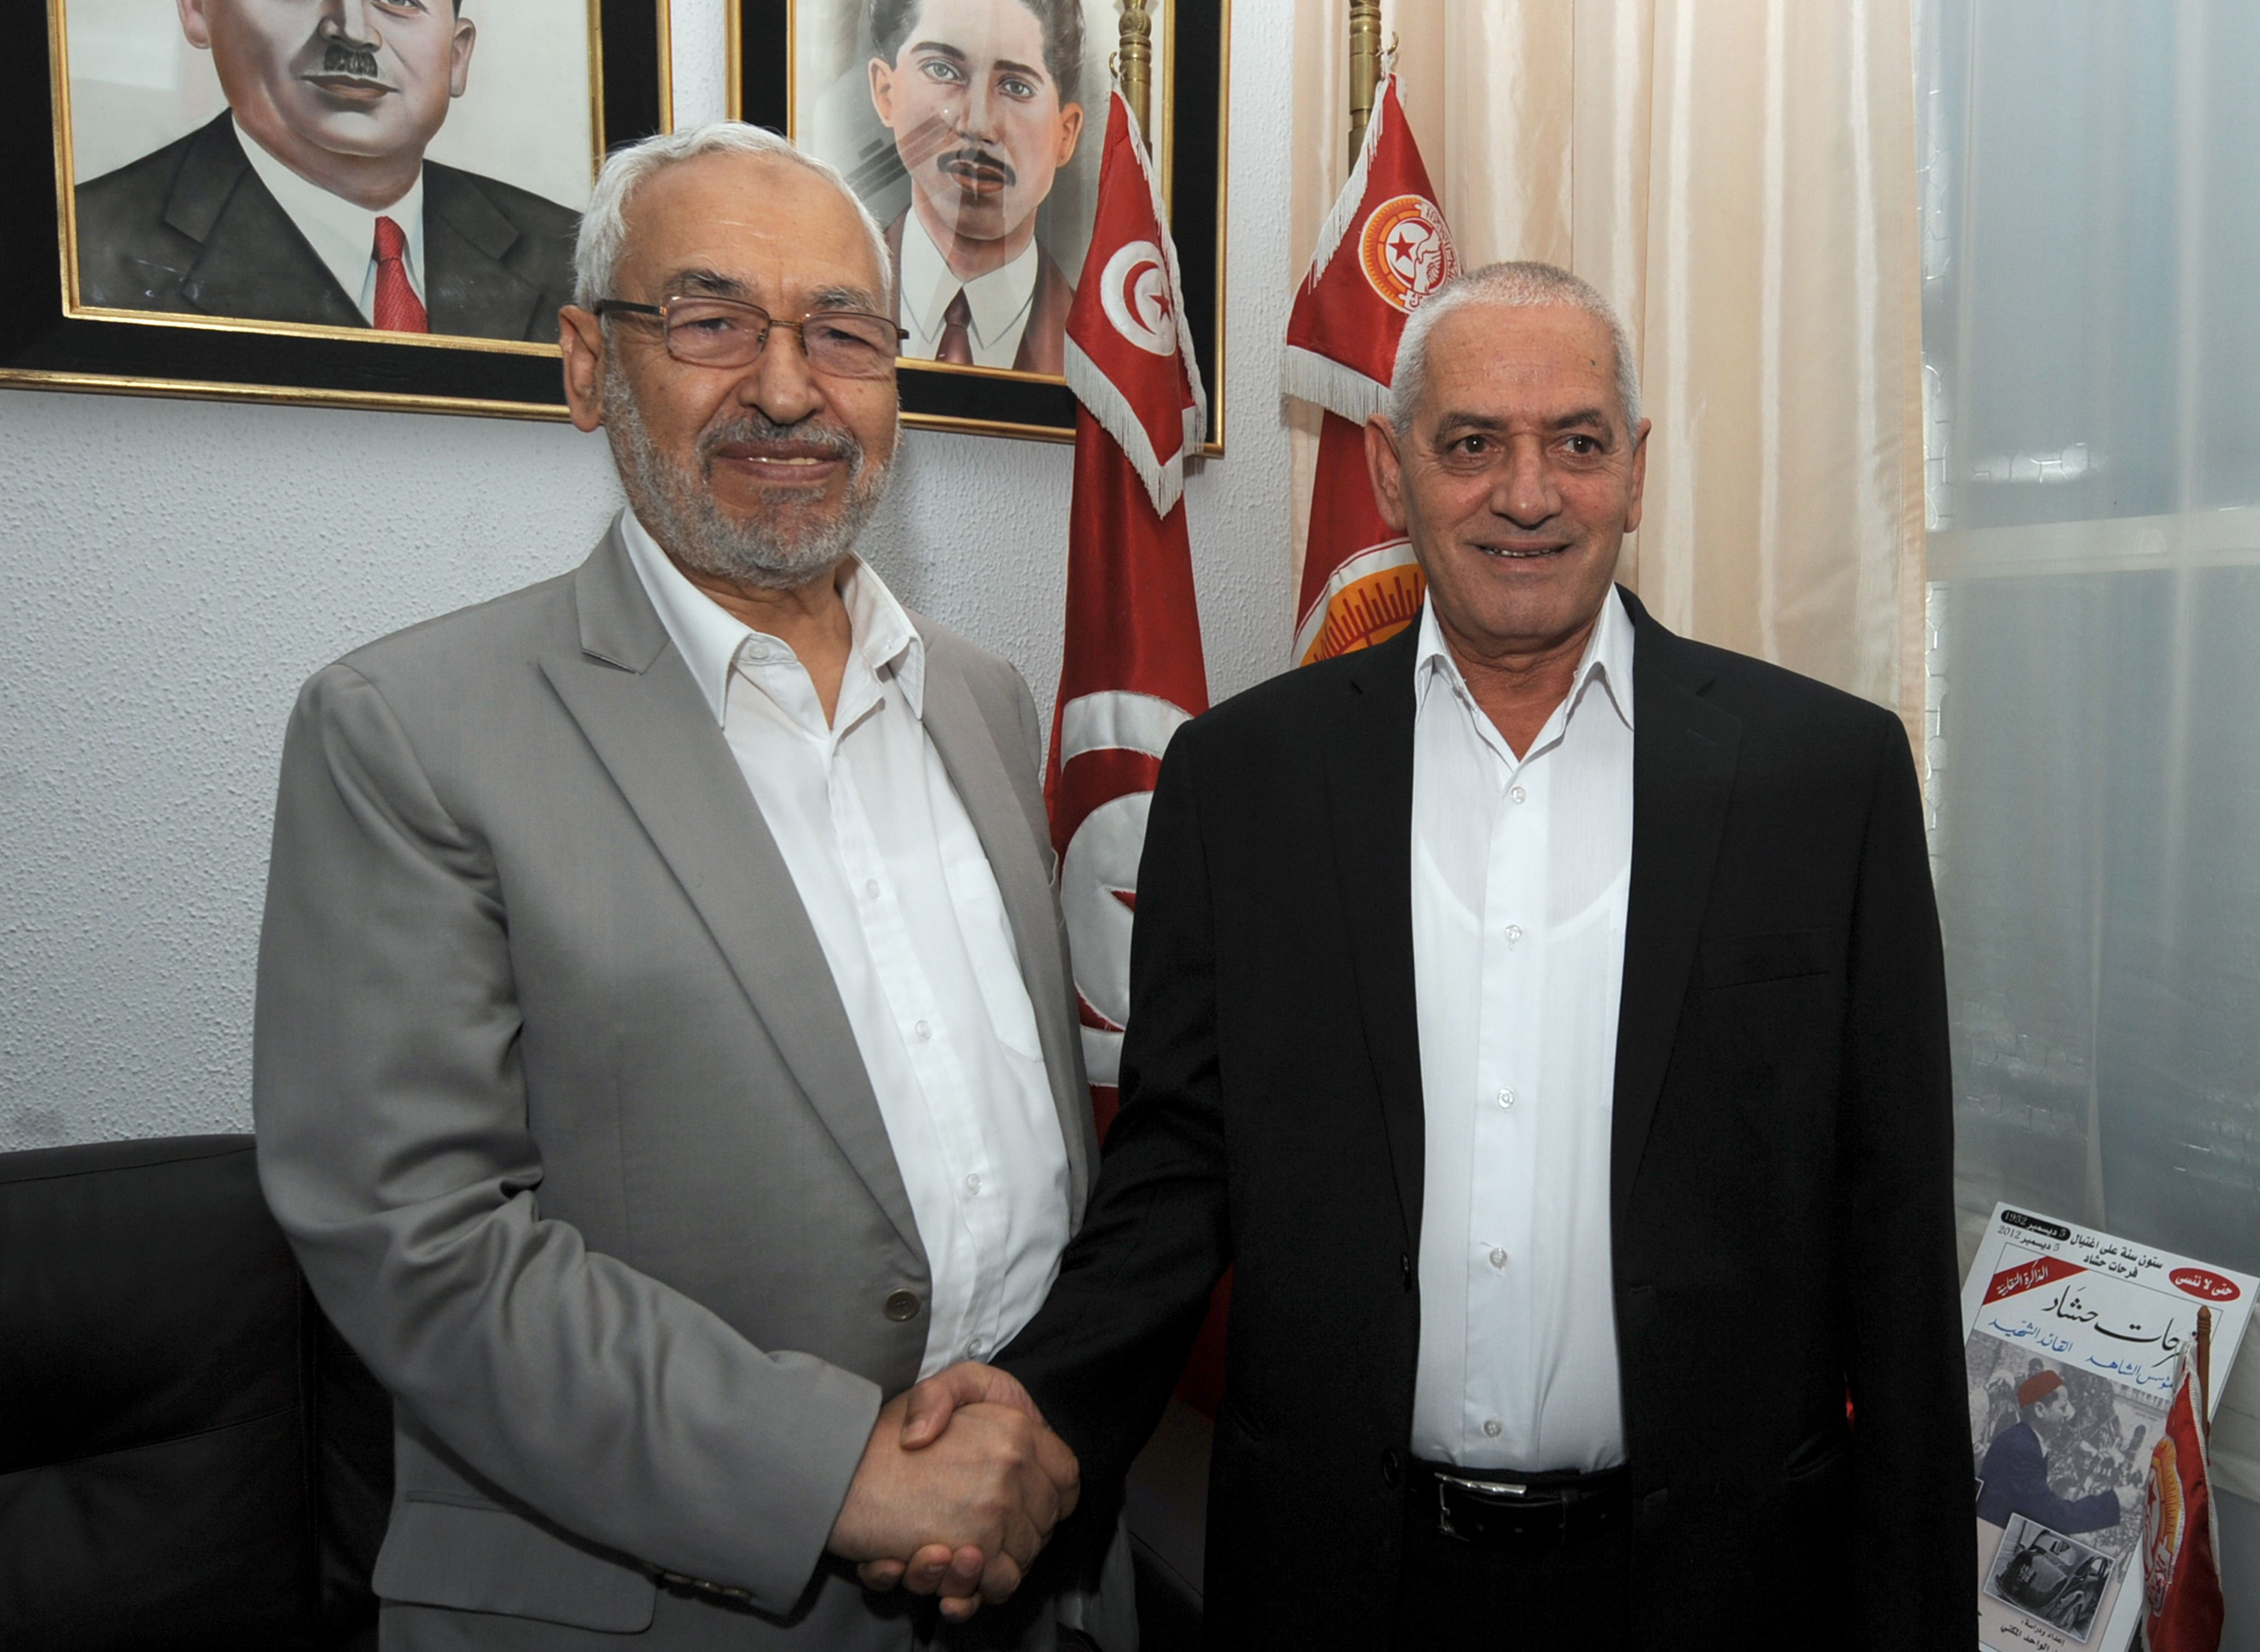 Leader of the ruling Ennahdha Islamist party Rached Ghannouchi (L) shakes hands with Secretary General of the Tunisian General Labour Union (UGTT) Houcine Abbassi, during a meeting in Tunis on August 12, 2013. The two leaders met to discuss the political crisis in Tunisia sparked by the murder of opposition politician Mohamed Brahmi in July. AFP PHOTO / FETHI BELAID